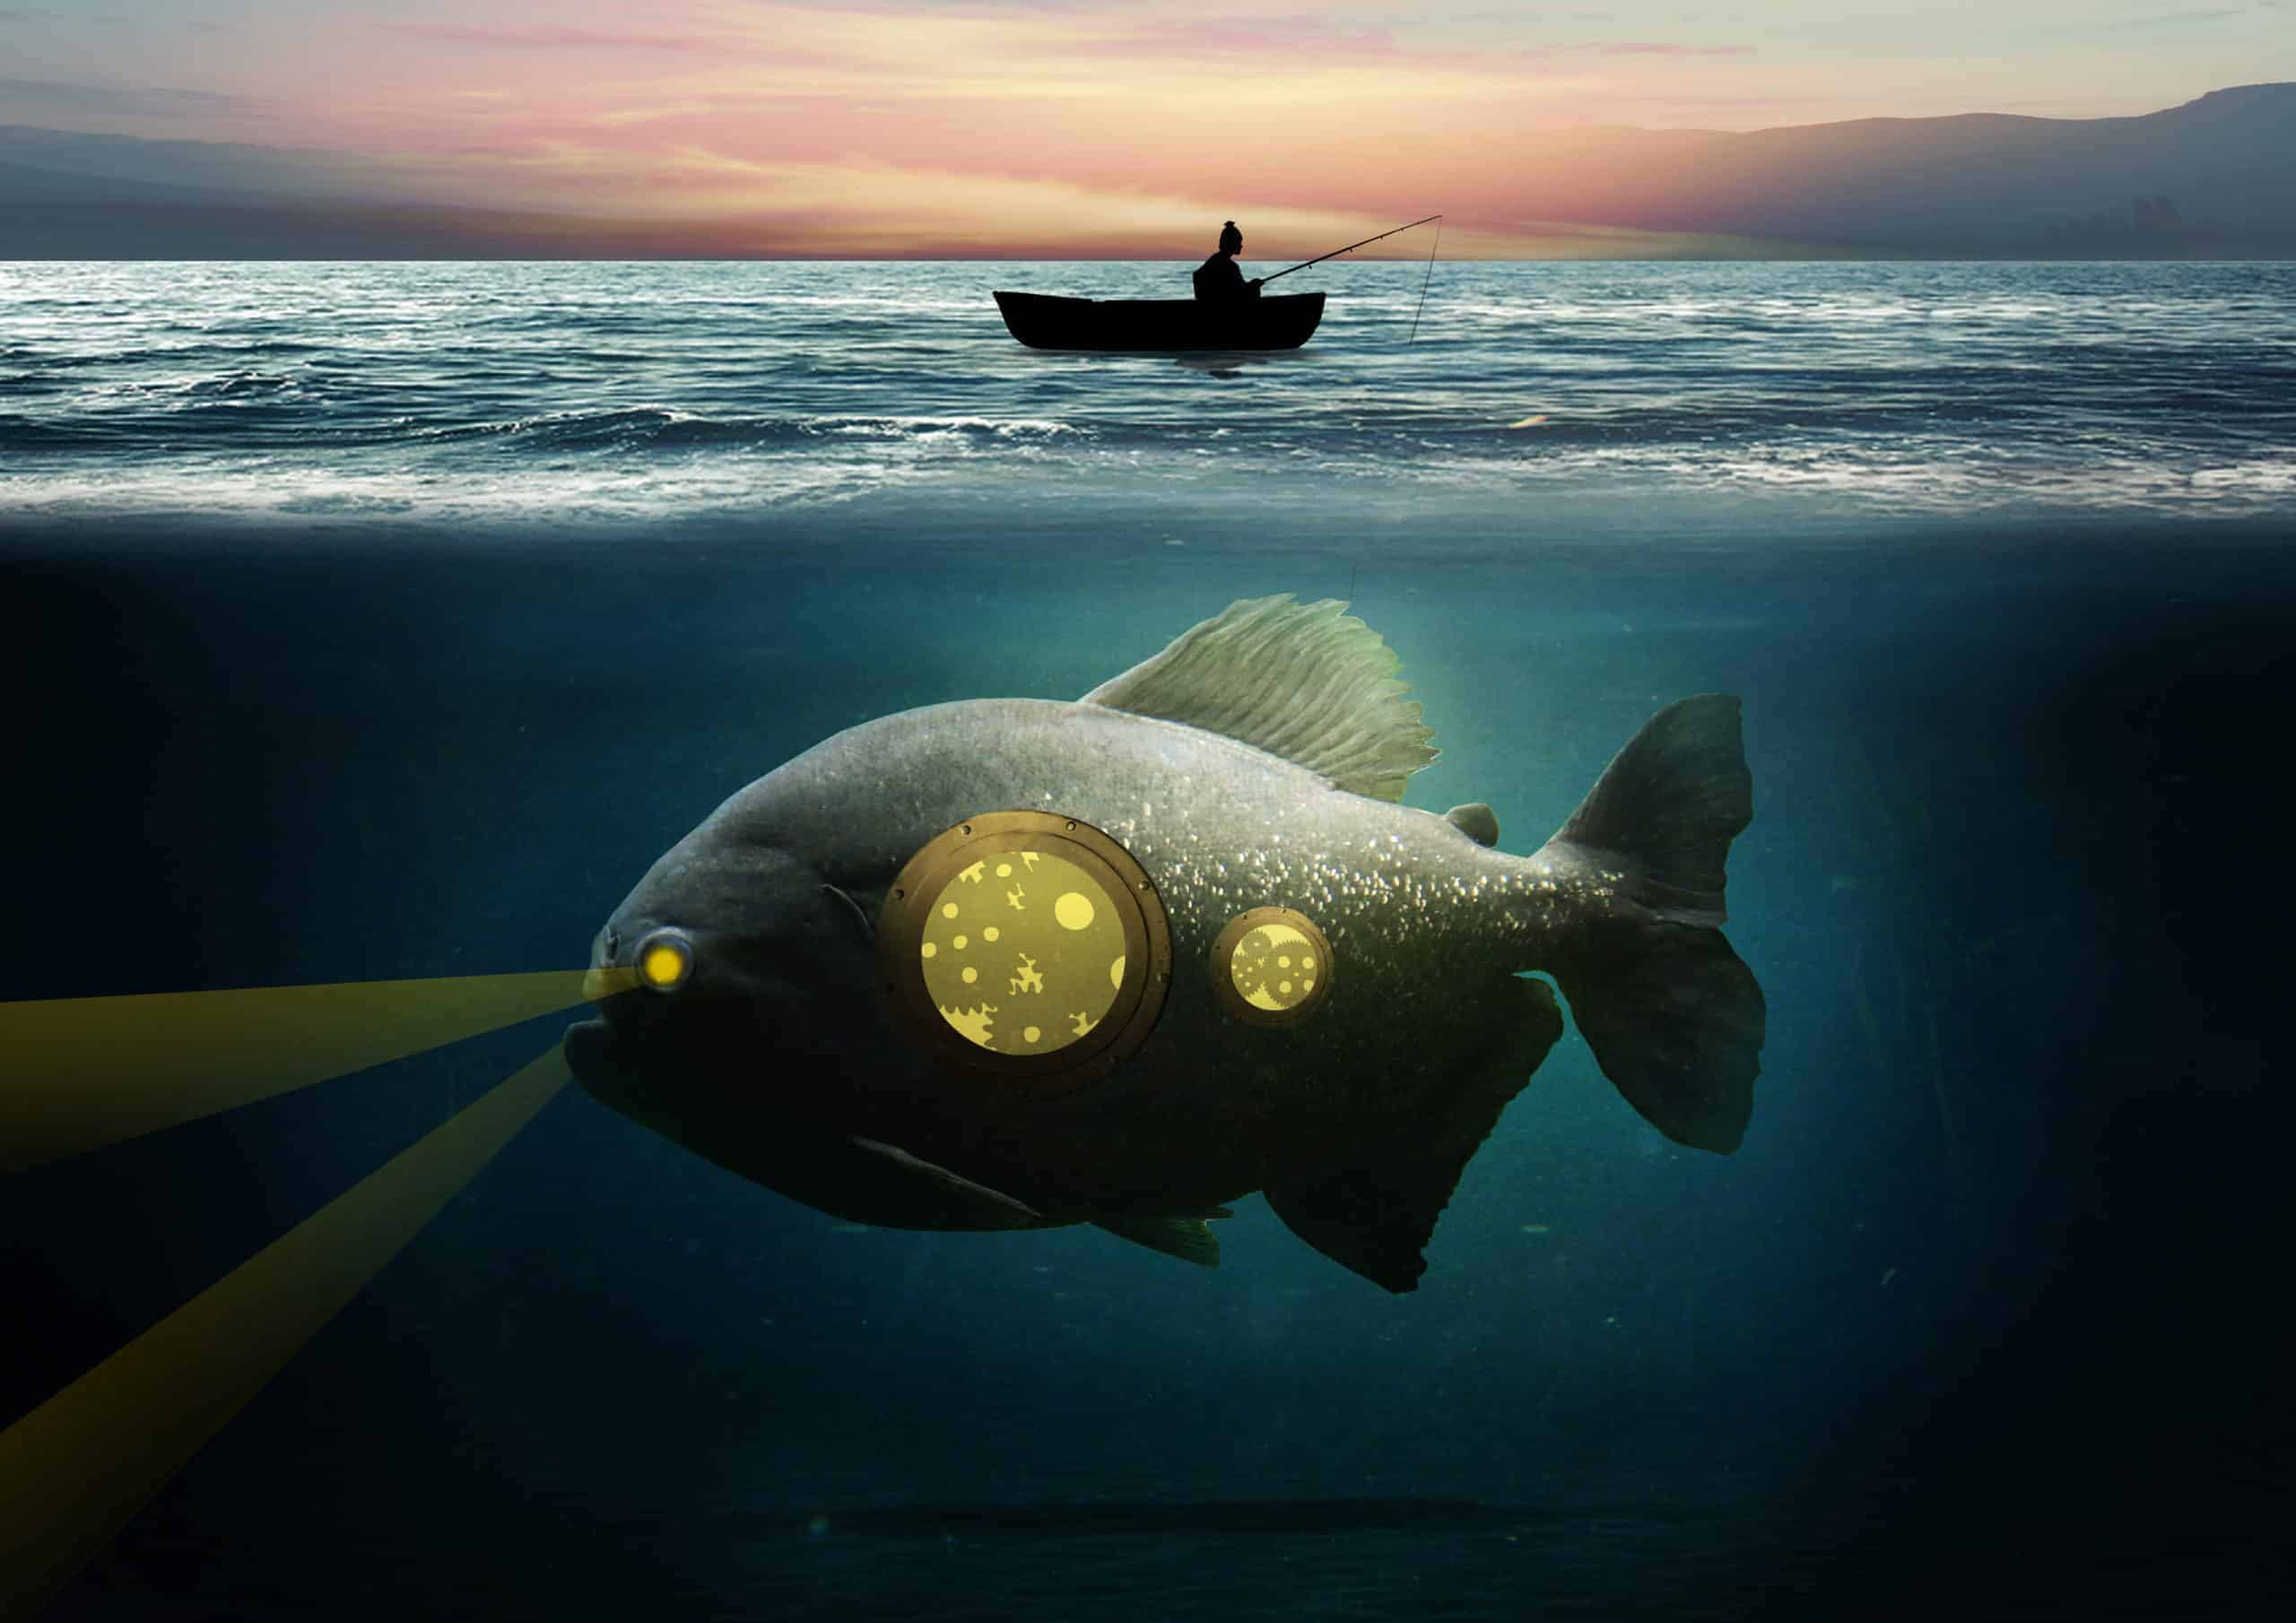 How to Create a Beautiful Underwater Surreal Scene in Photoshop